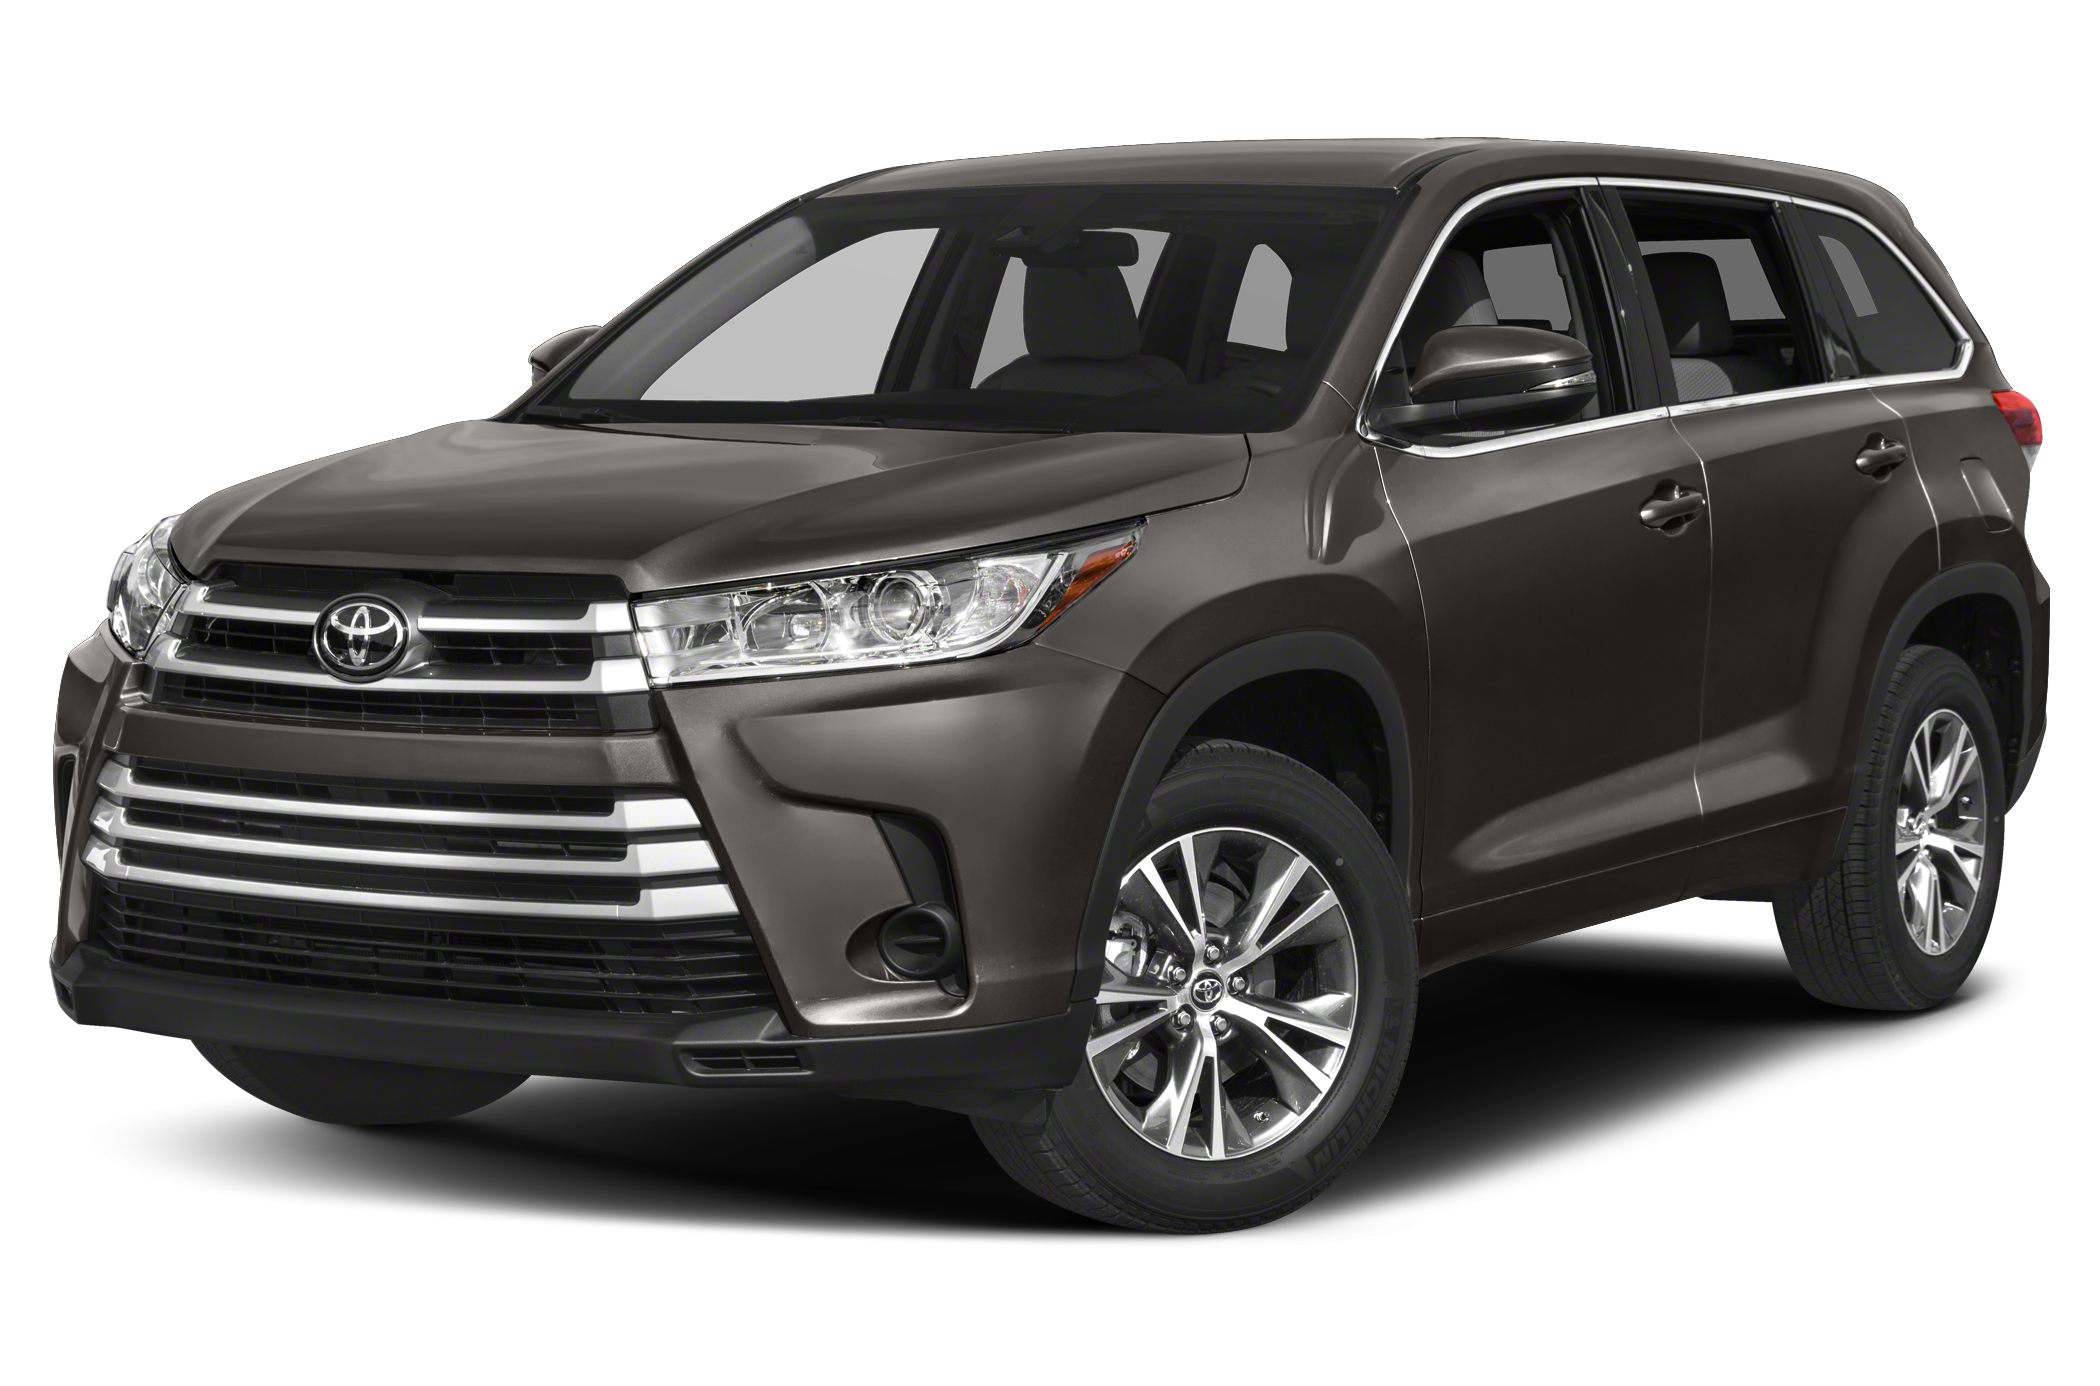 Image result for Toyota Highlander